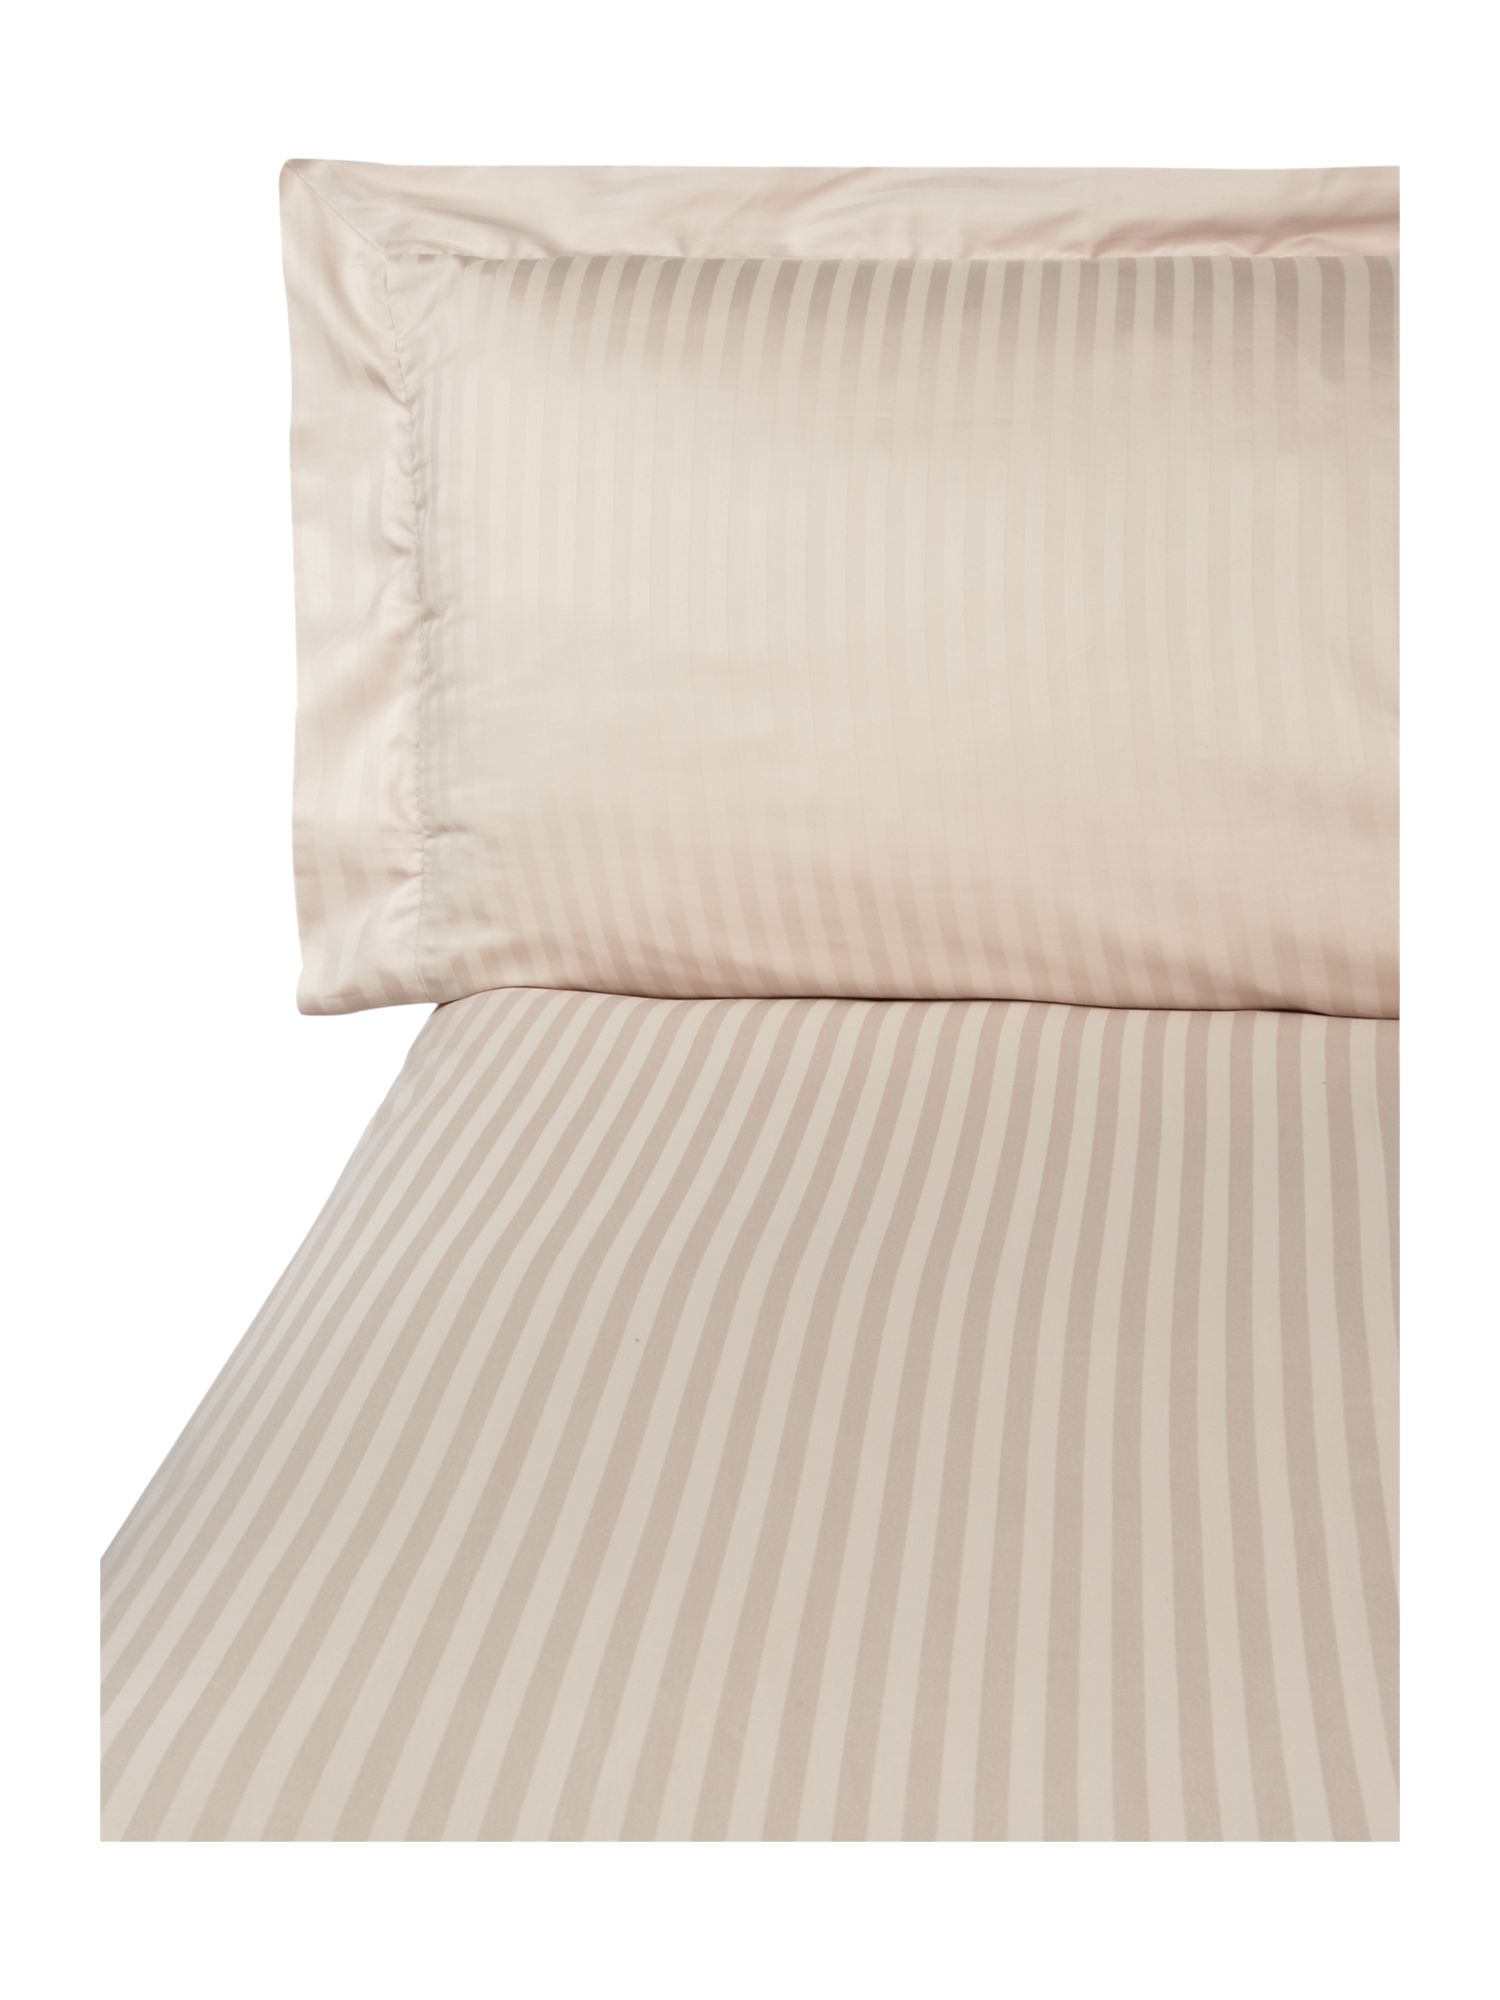 Satin stripe king duvet cover set Taupe